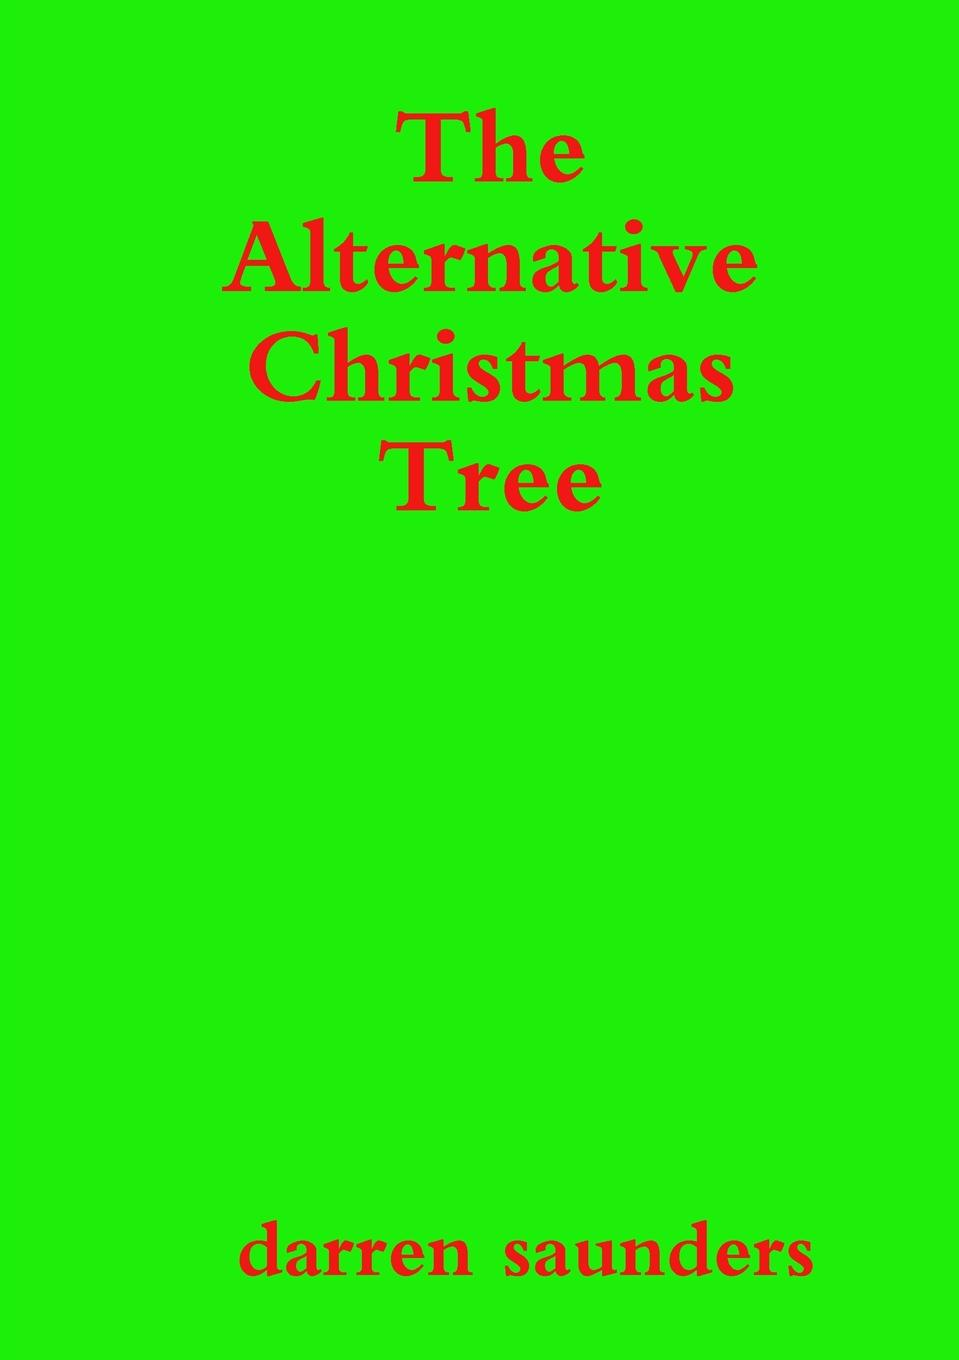 darren saunders The Alternative Christmas Tree norriss a friends for life